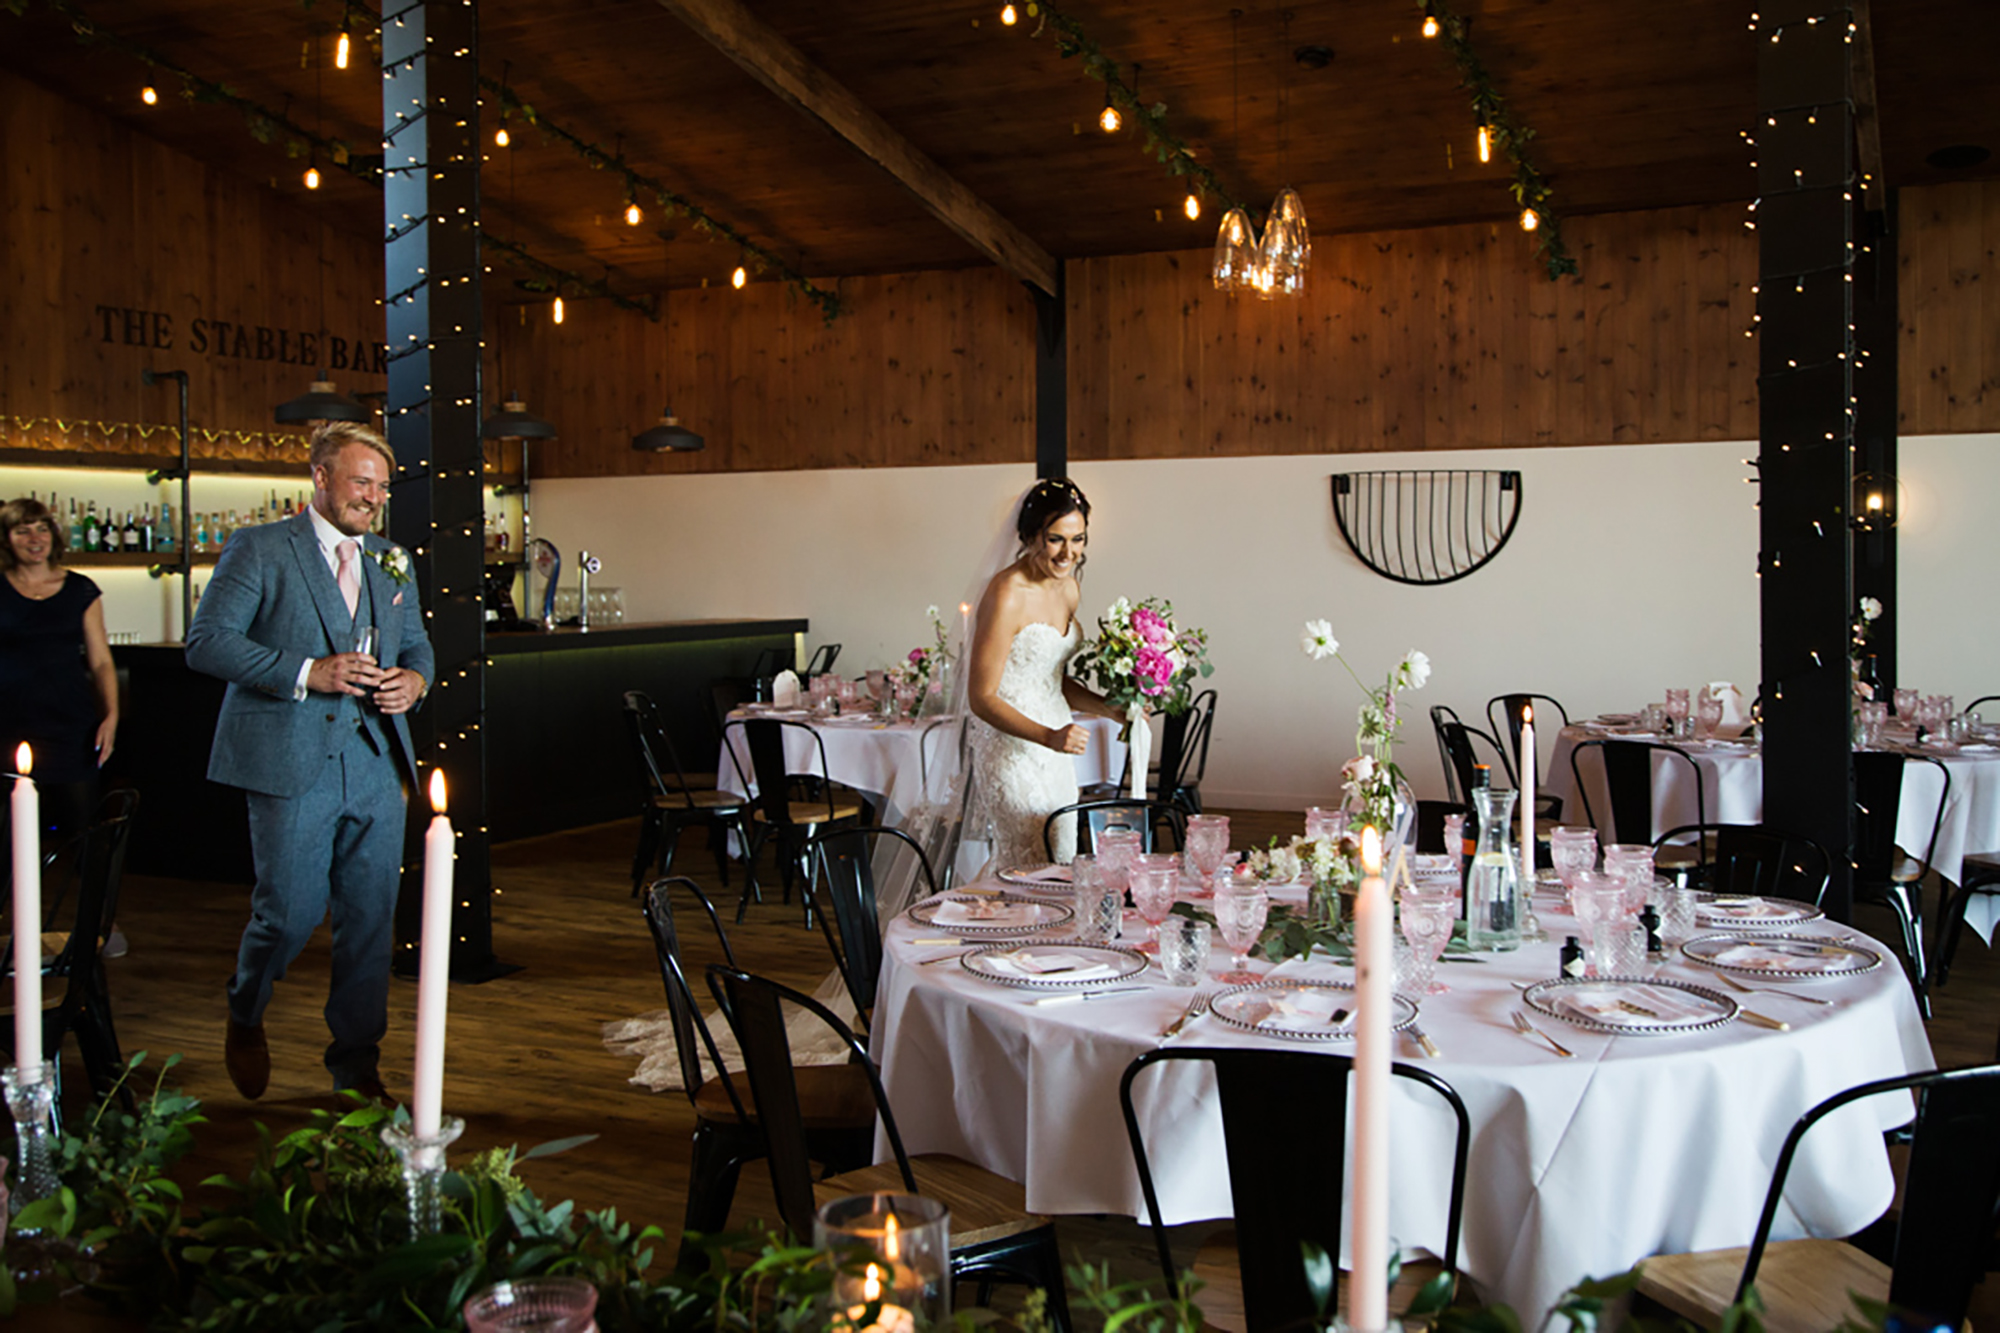 Bride and Groom walk past Wedding Breakfast tables in The Stable Barn at Upton